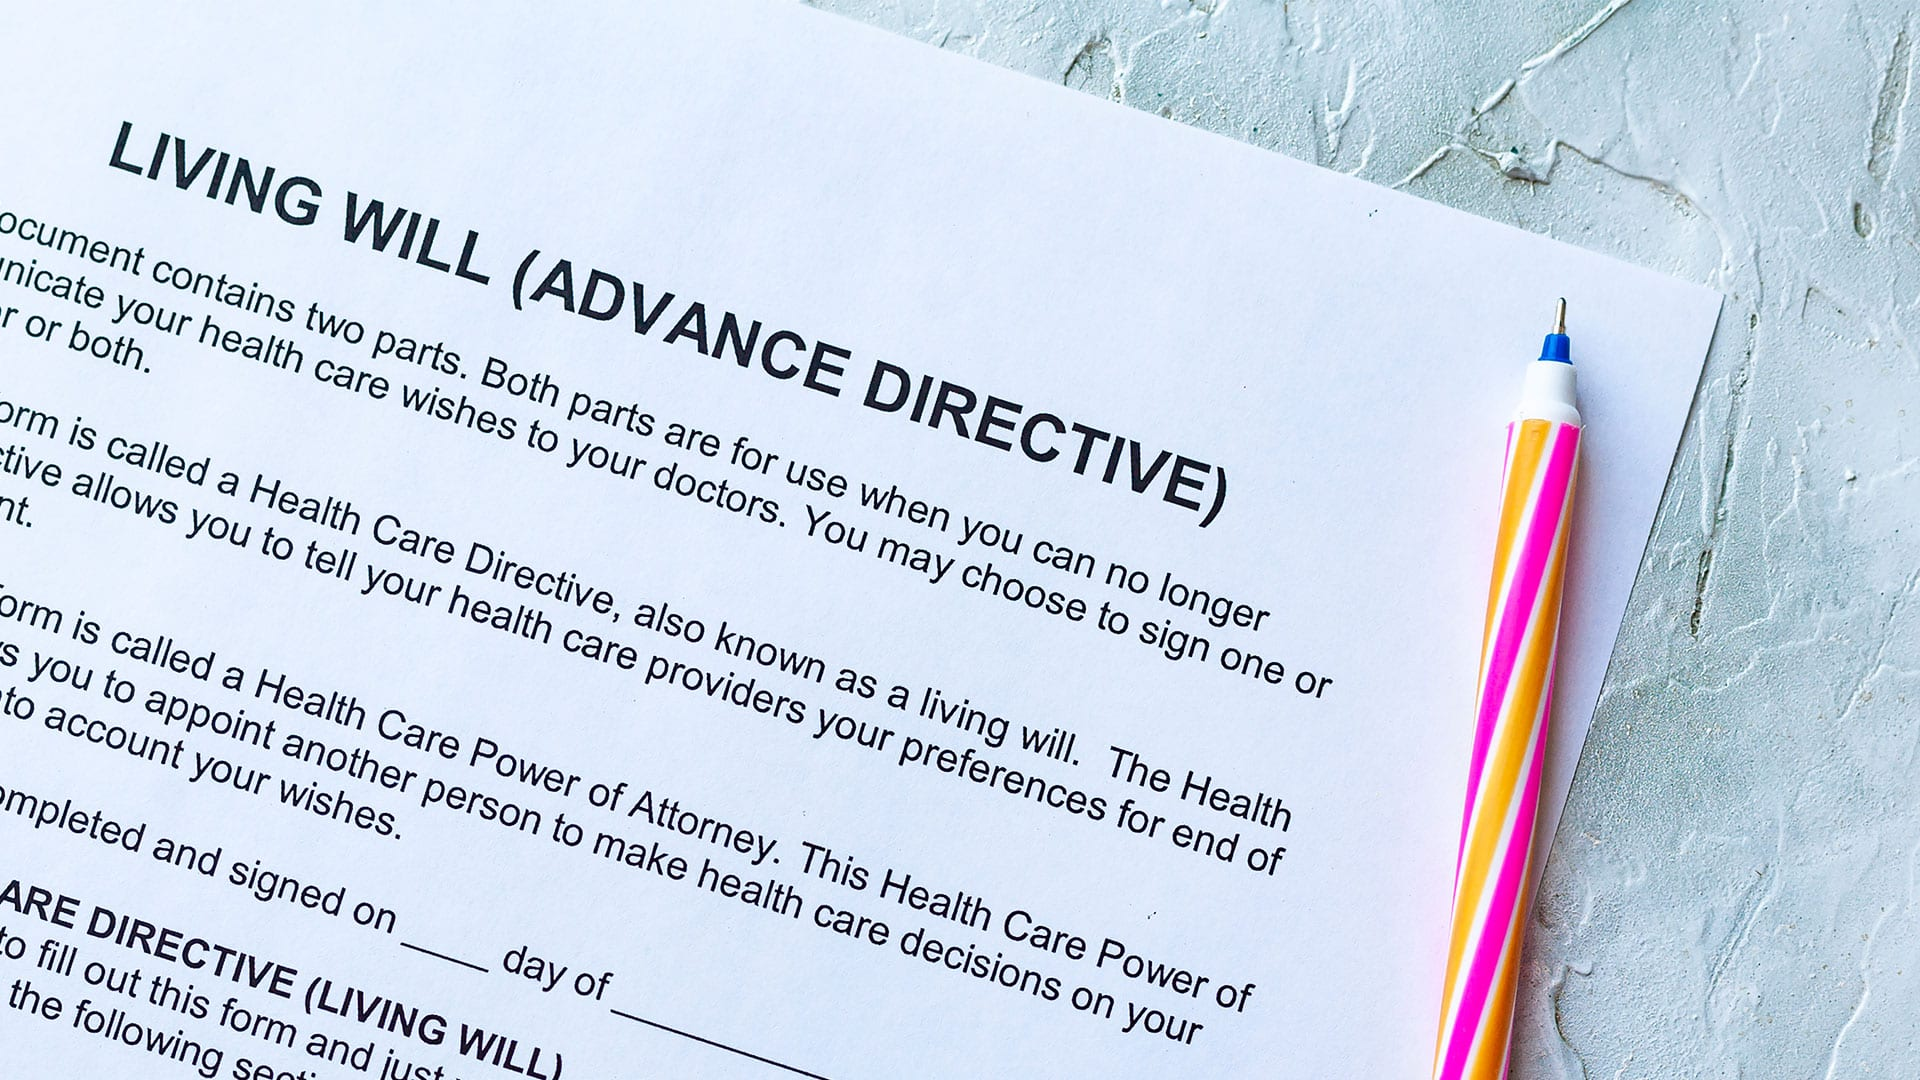 A blank advance directive sits on a table beside a pen.